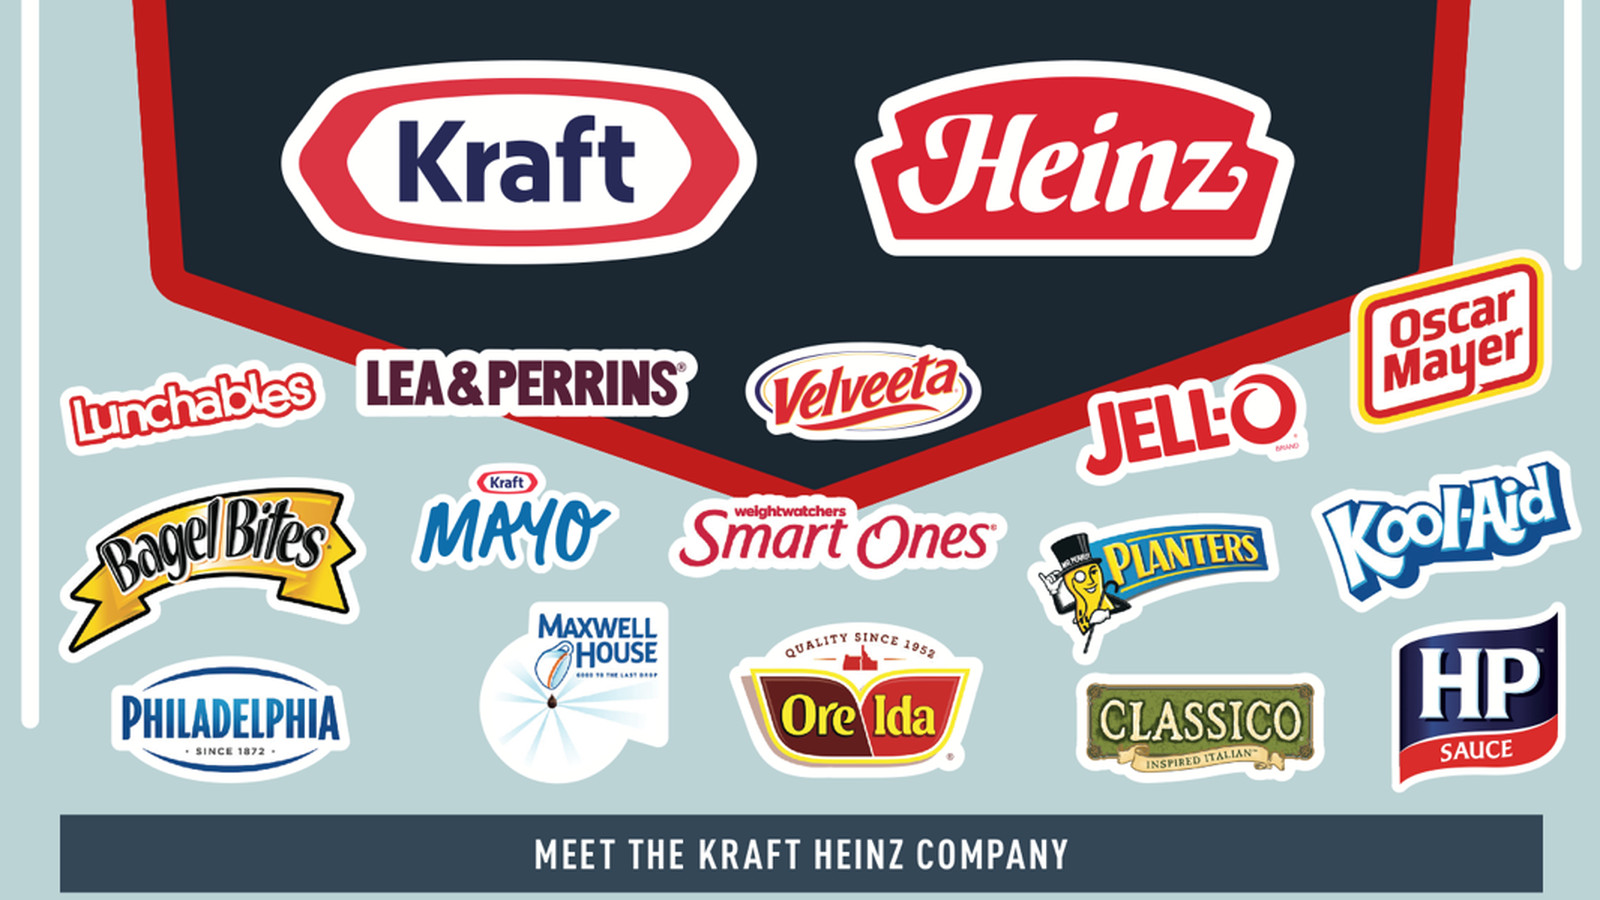 Kraft and Heinz are merging to form a food superconglomerate - Vox on kraft kool-aid, amedeo obici, kraft cabinets, kraft stove top stuffing, grey poupon, mr. peanut, kraft easy cheese, kraft cool whip, kraft capri sun, kraft foods, capri sun, kraft dinner, kraft boxes, kraft vegemite, kraft tools, maxwell house, oscar mayer, boca burger,